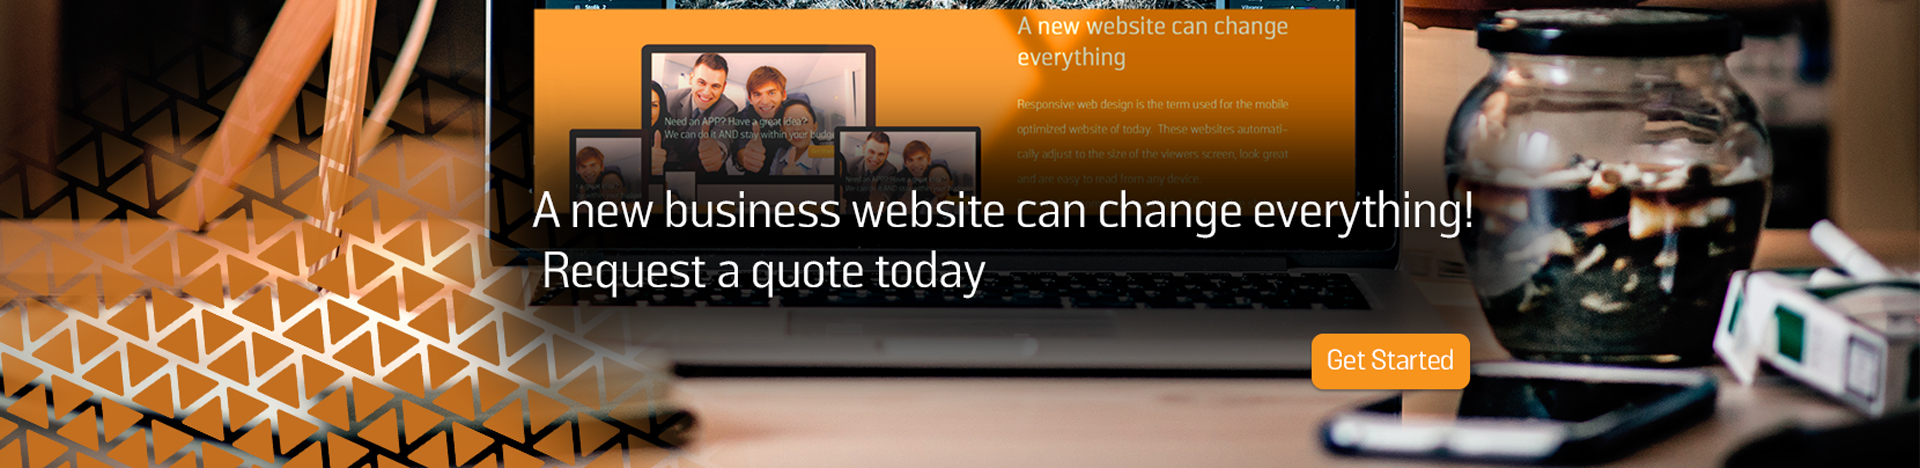 A new business website can change everything.